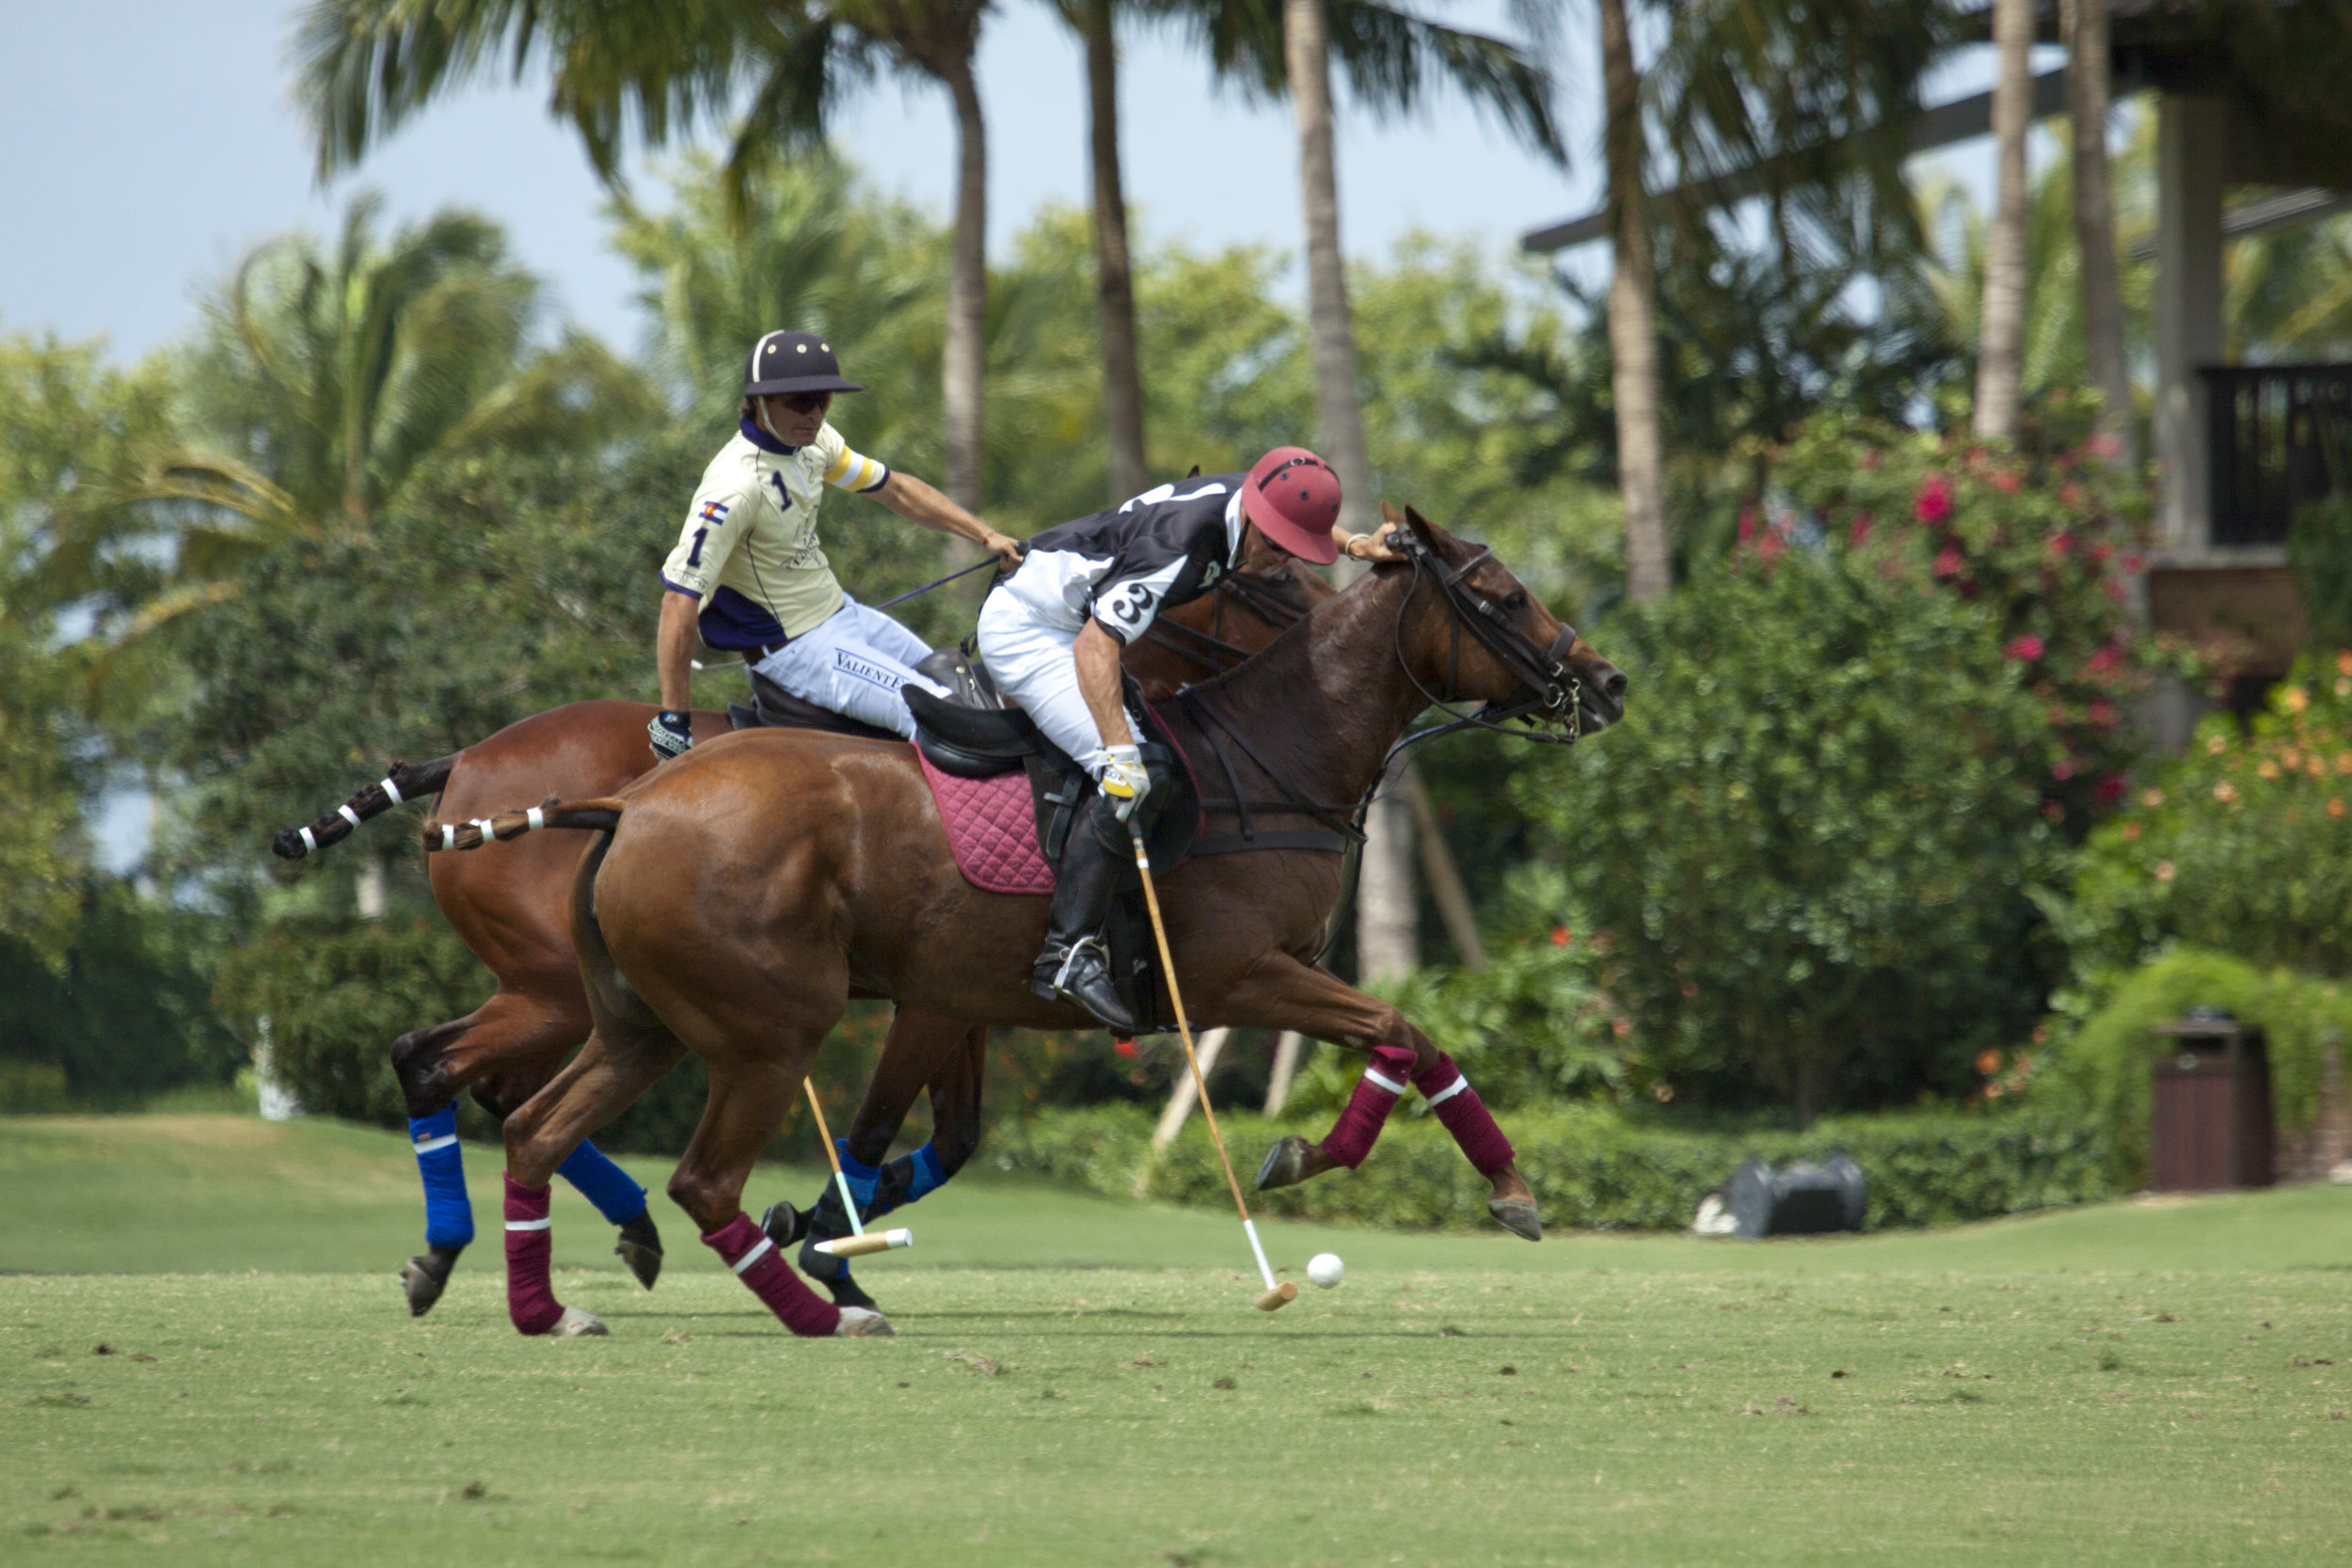 Gringo Colombres of Palm Beach Polo/Palm Beach Equine works the ball downfield.